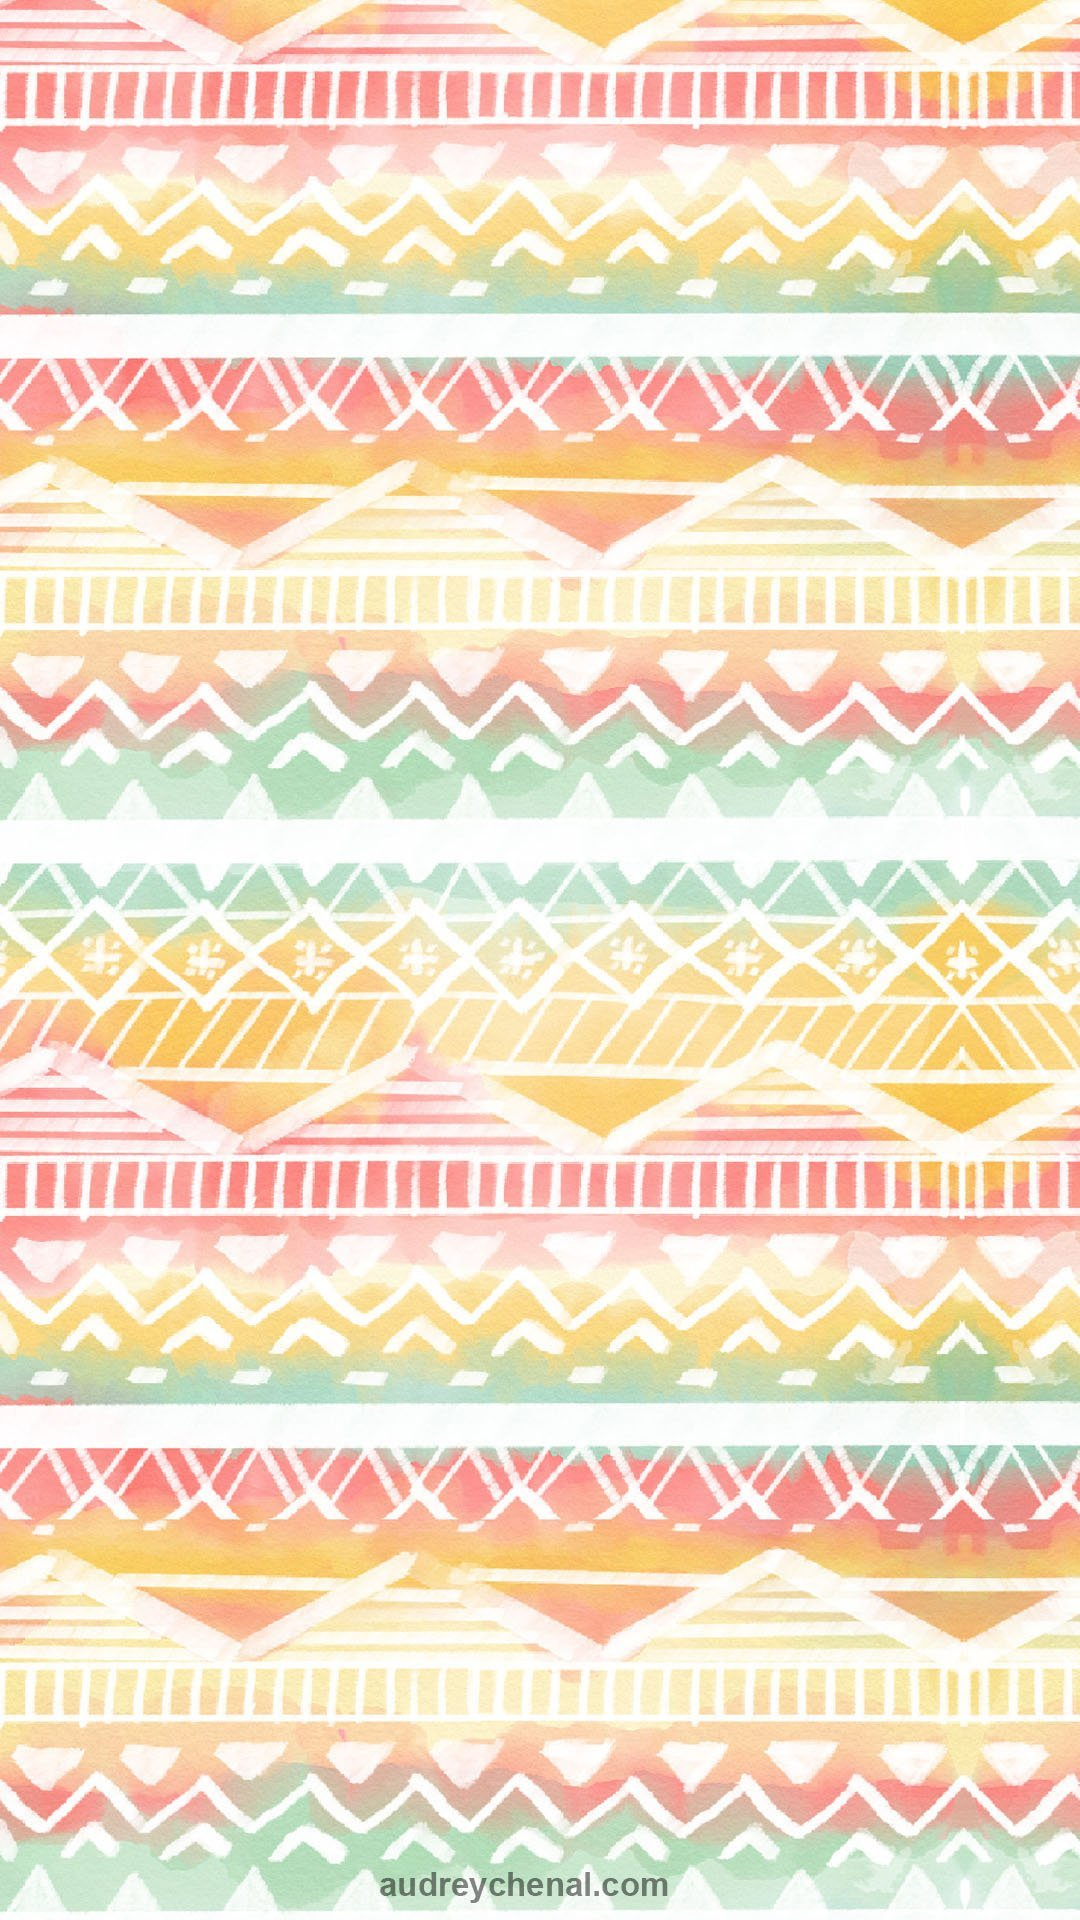 white modern handdrawn aztec pattern beach pink blue yellow watercolor paint by Audrey Chenal